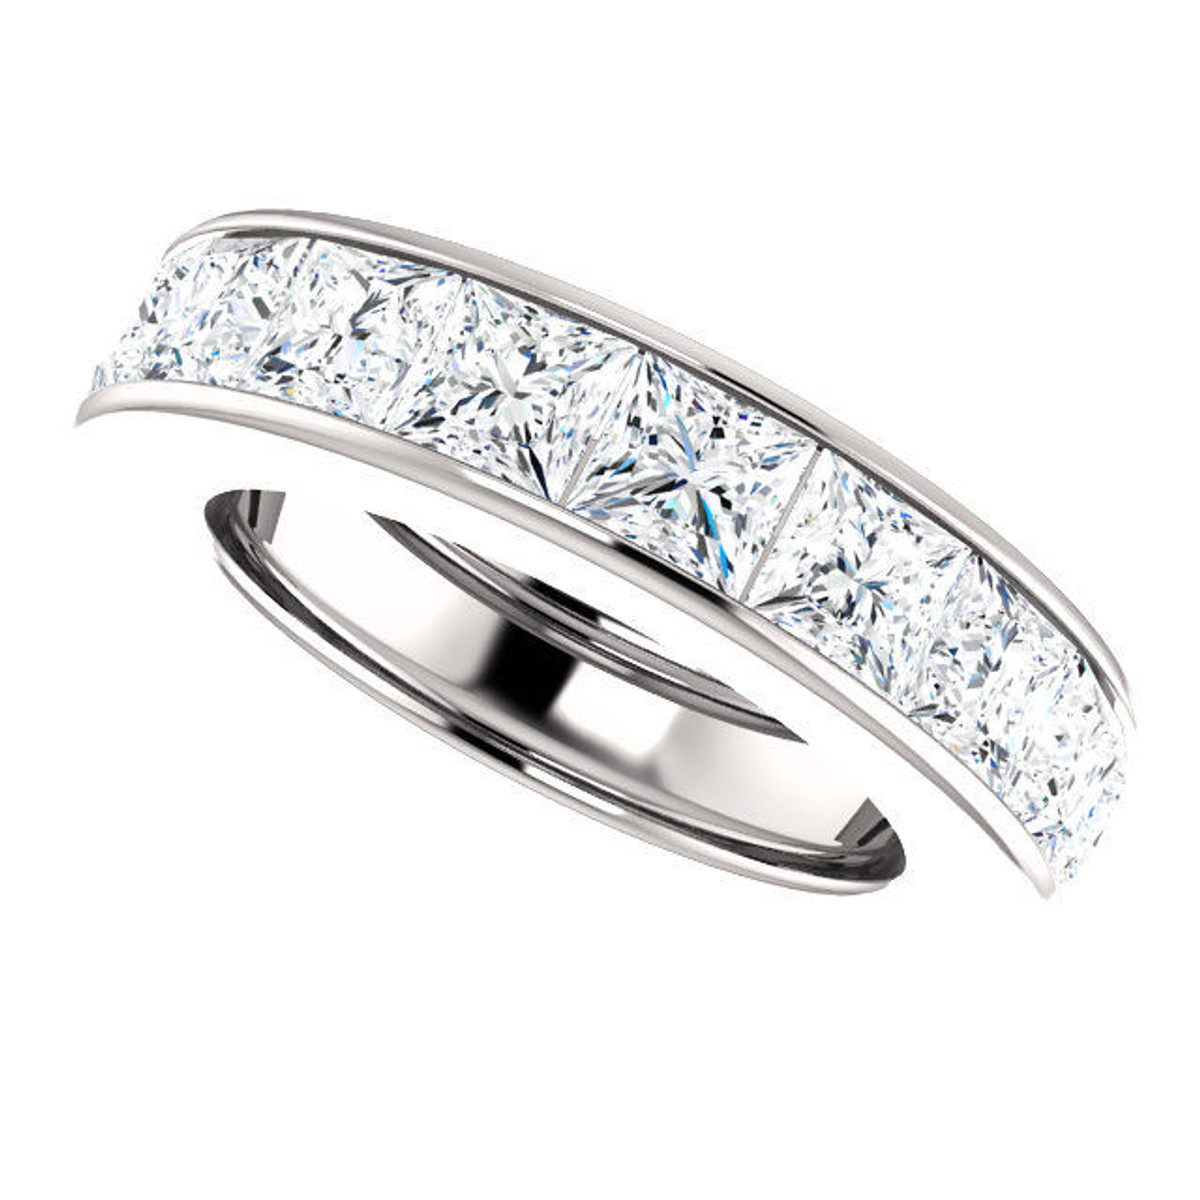 Platinum 7.2 ct tw Princess Cut Diamond Eternity Ring